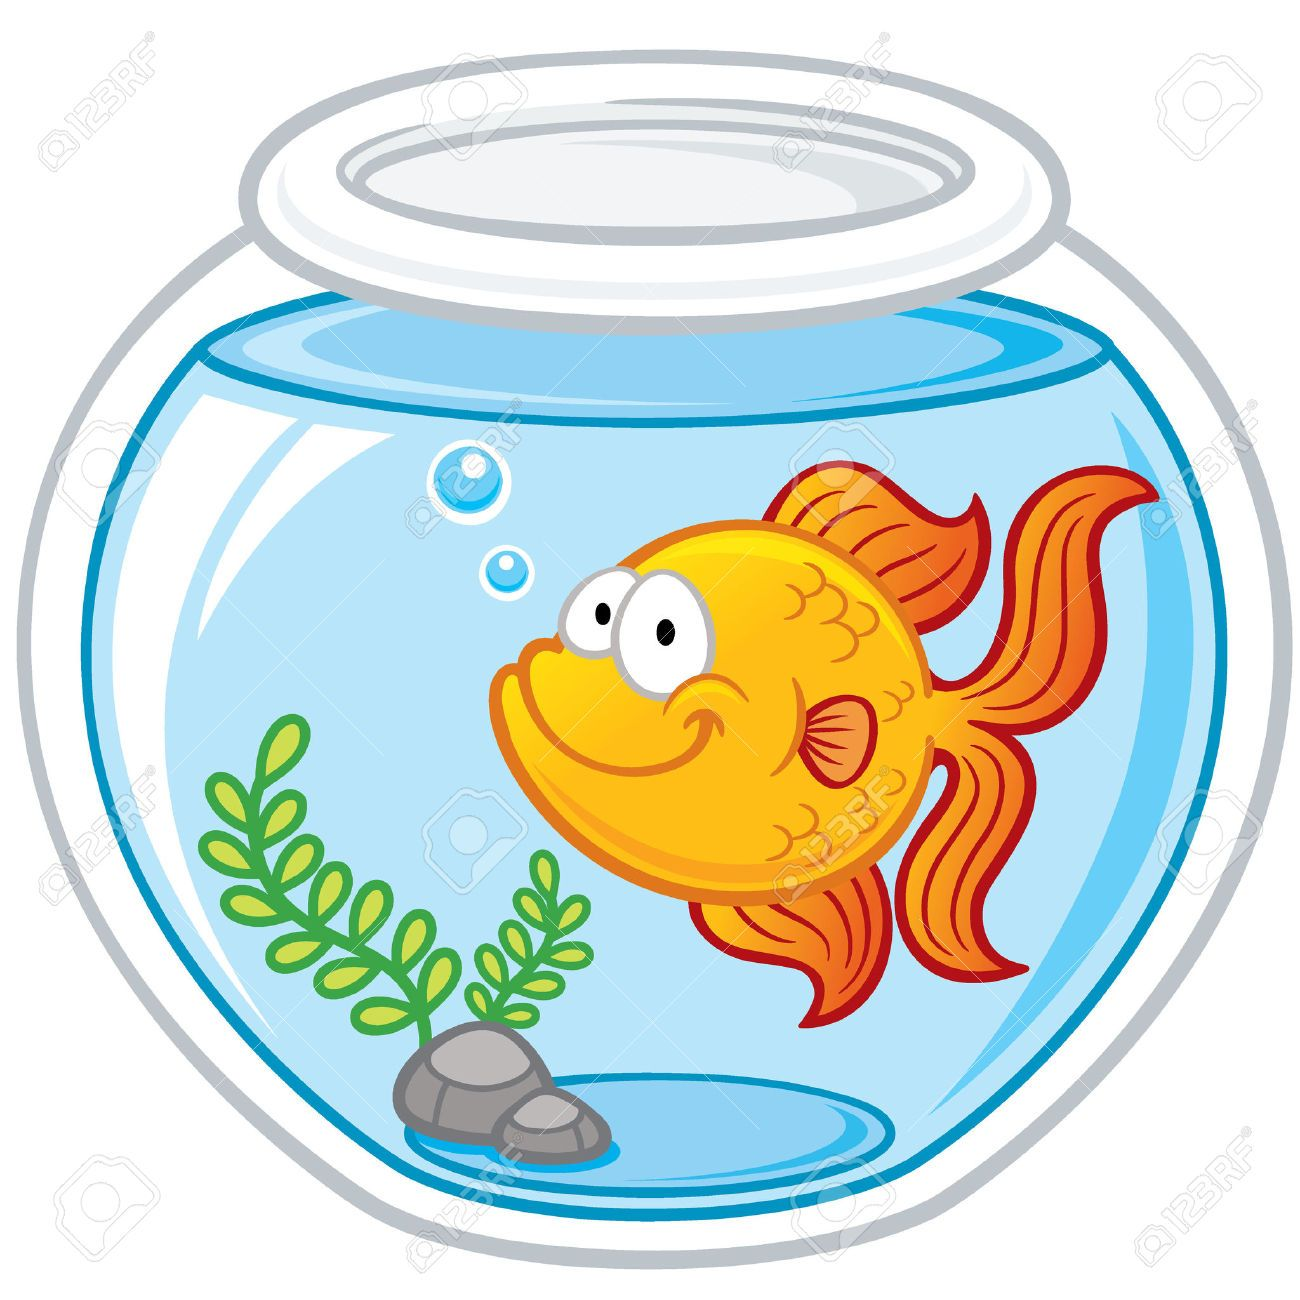 fish bowl clipart fish tank clipart goldfish bowl 2.